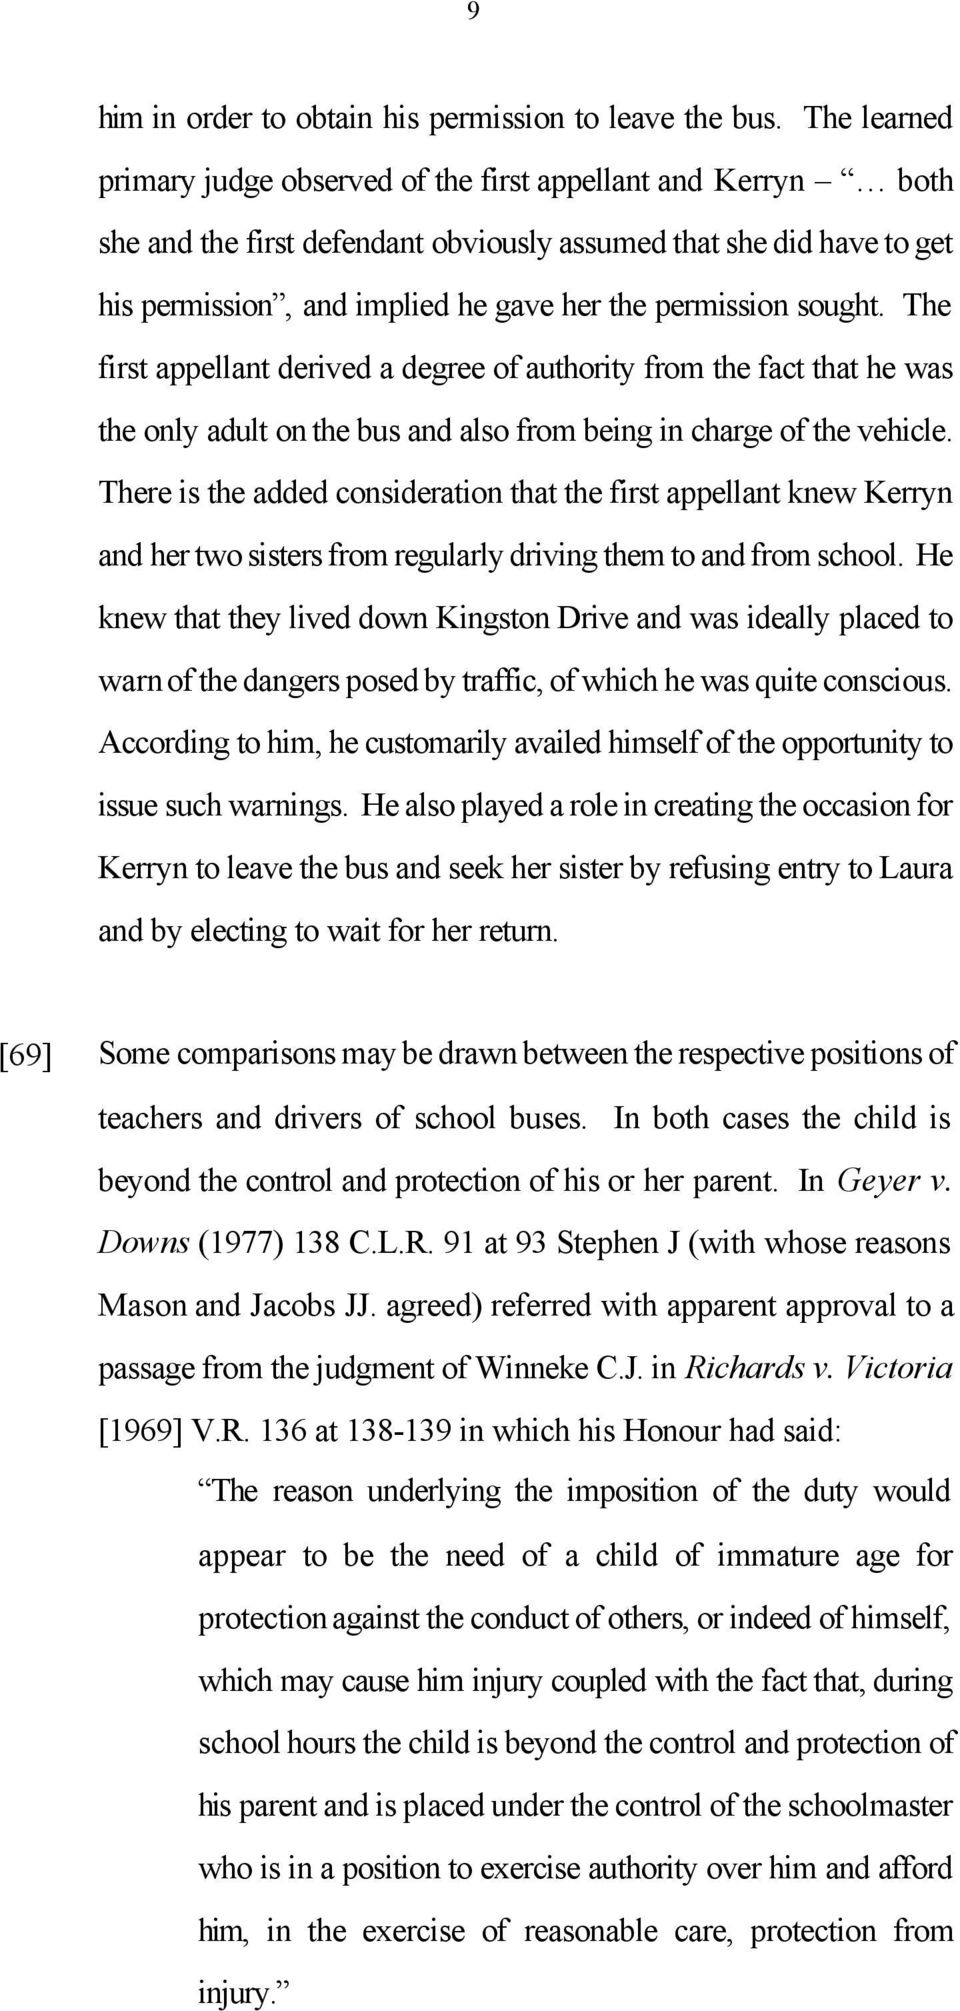 sought. The first appellant derived a degree of authority from the fact that he was the only adult on the bus and also from being in charge of the vehicle.